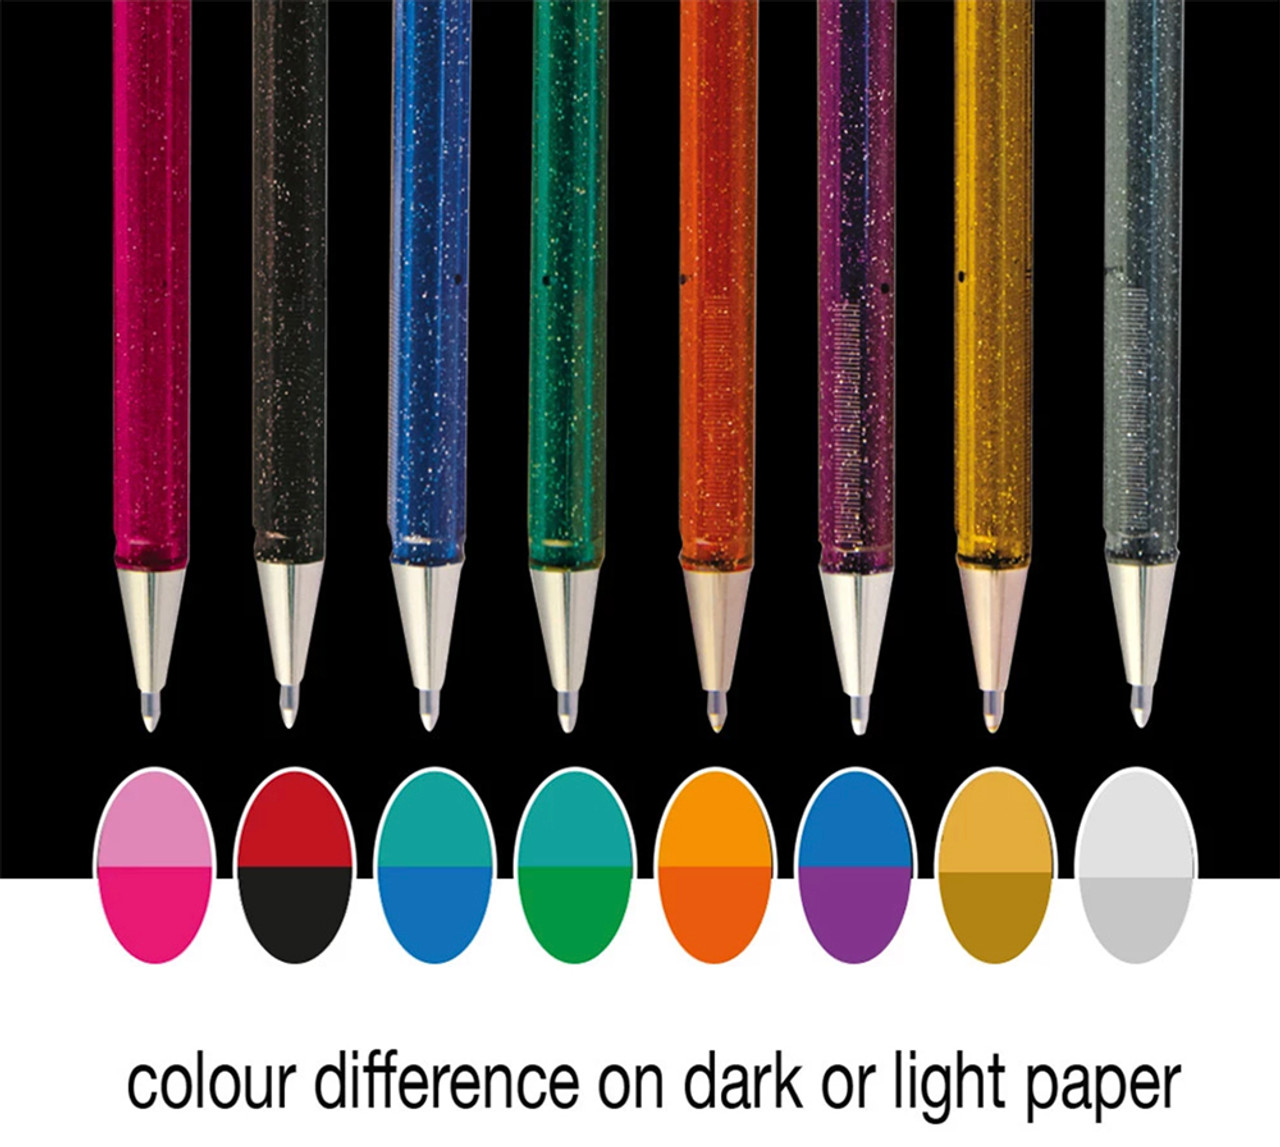 Pentel dual metallic pen colours